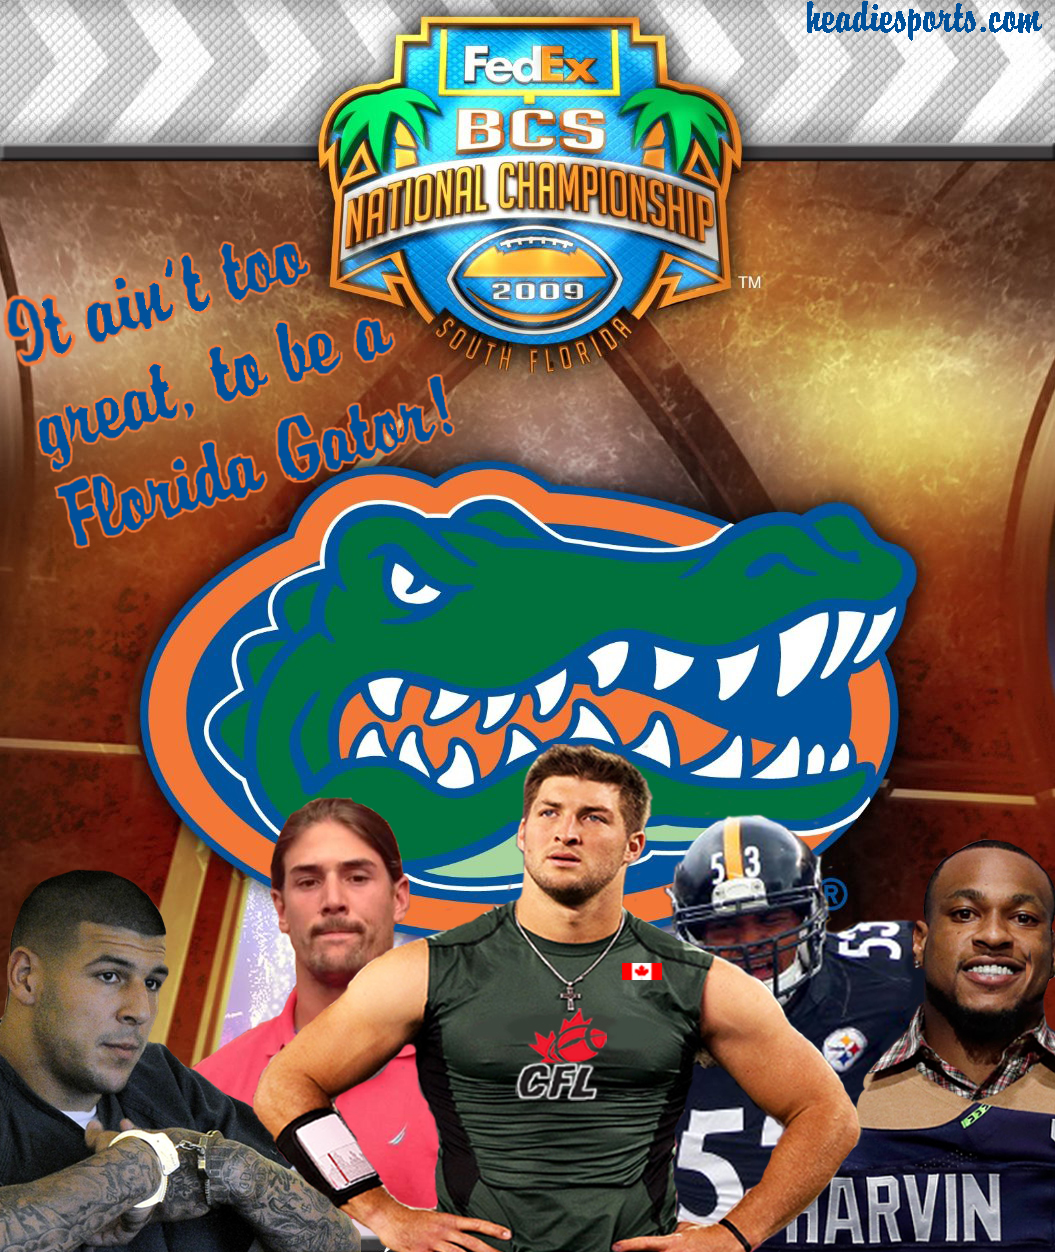 florida gators 2008 bcs national champs is it great to be a florida gator?? headie sports